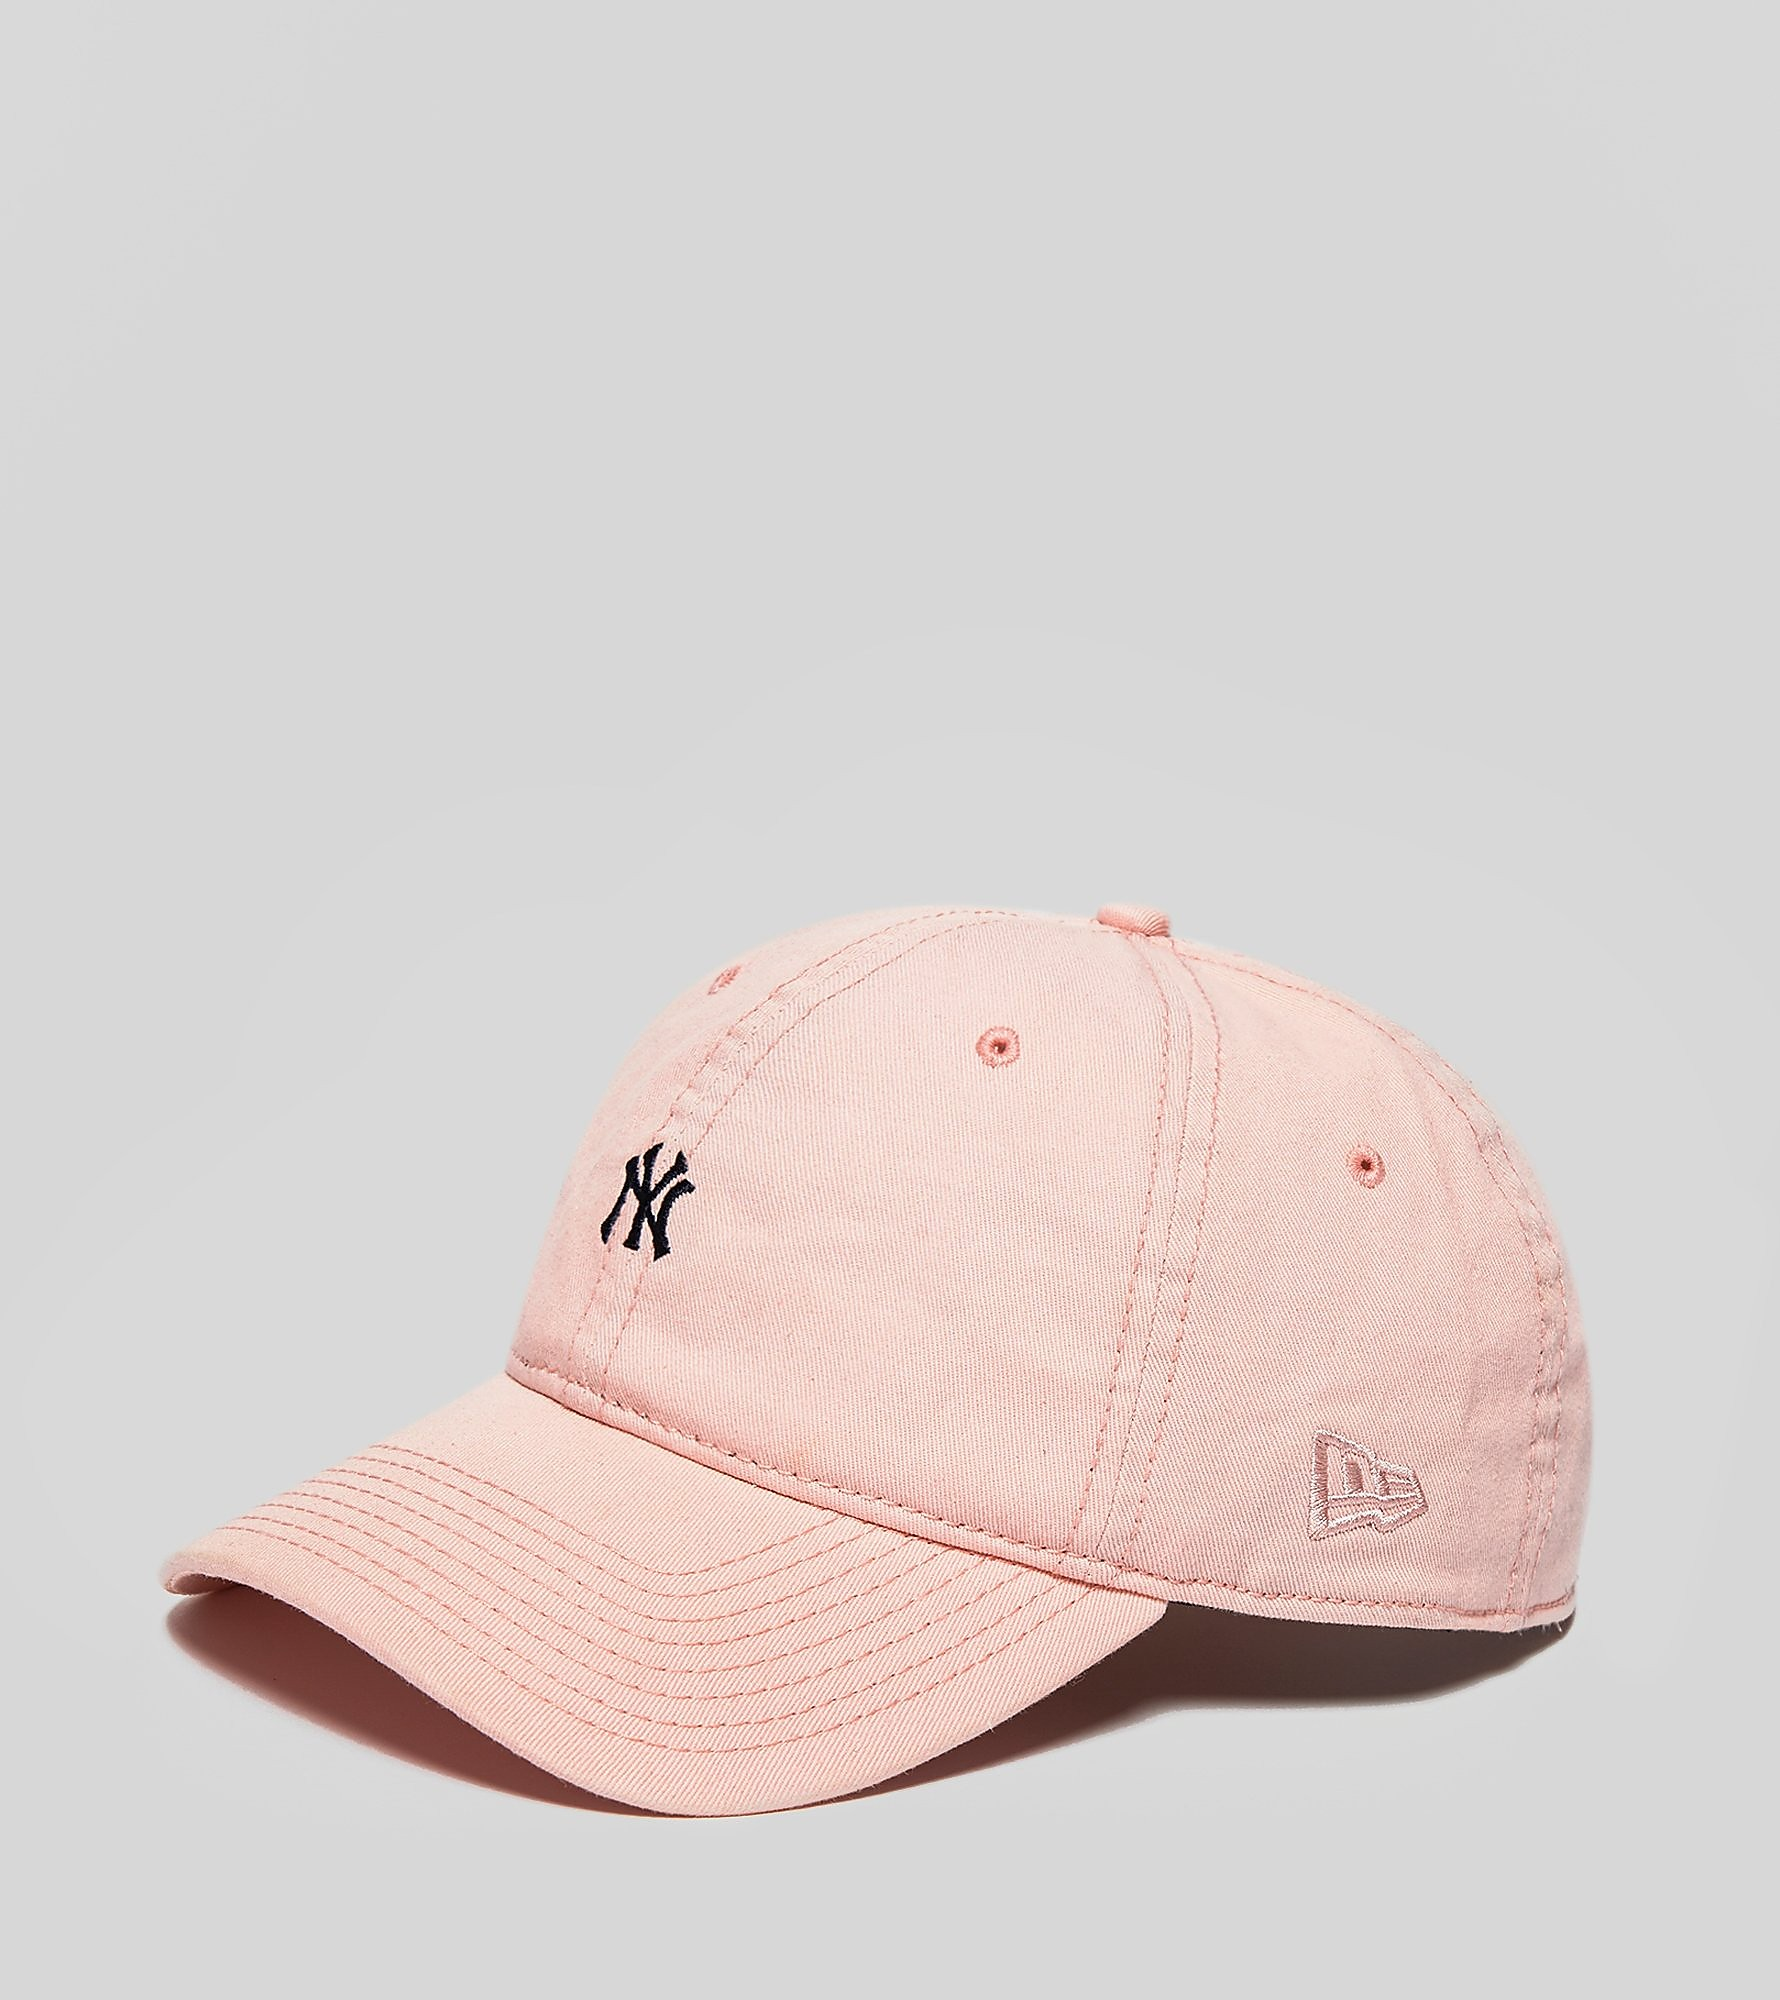 New Era 'British Summertime' Cap-size? Exclusive